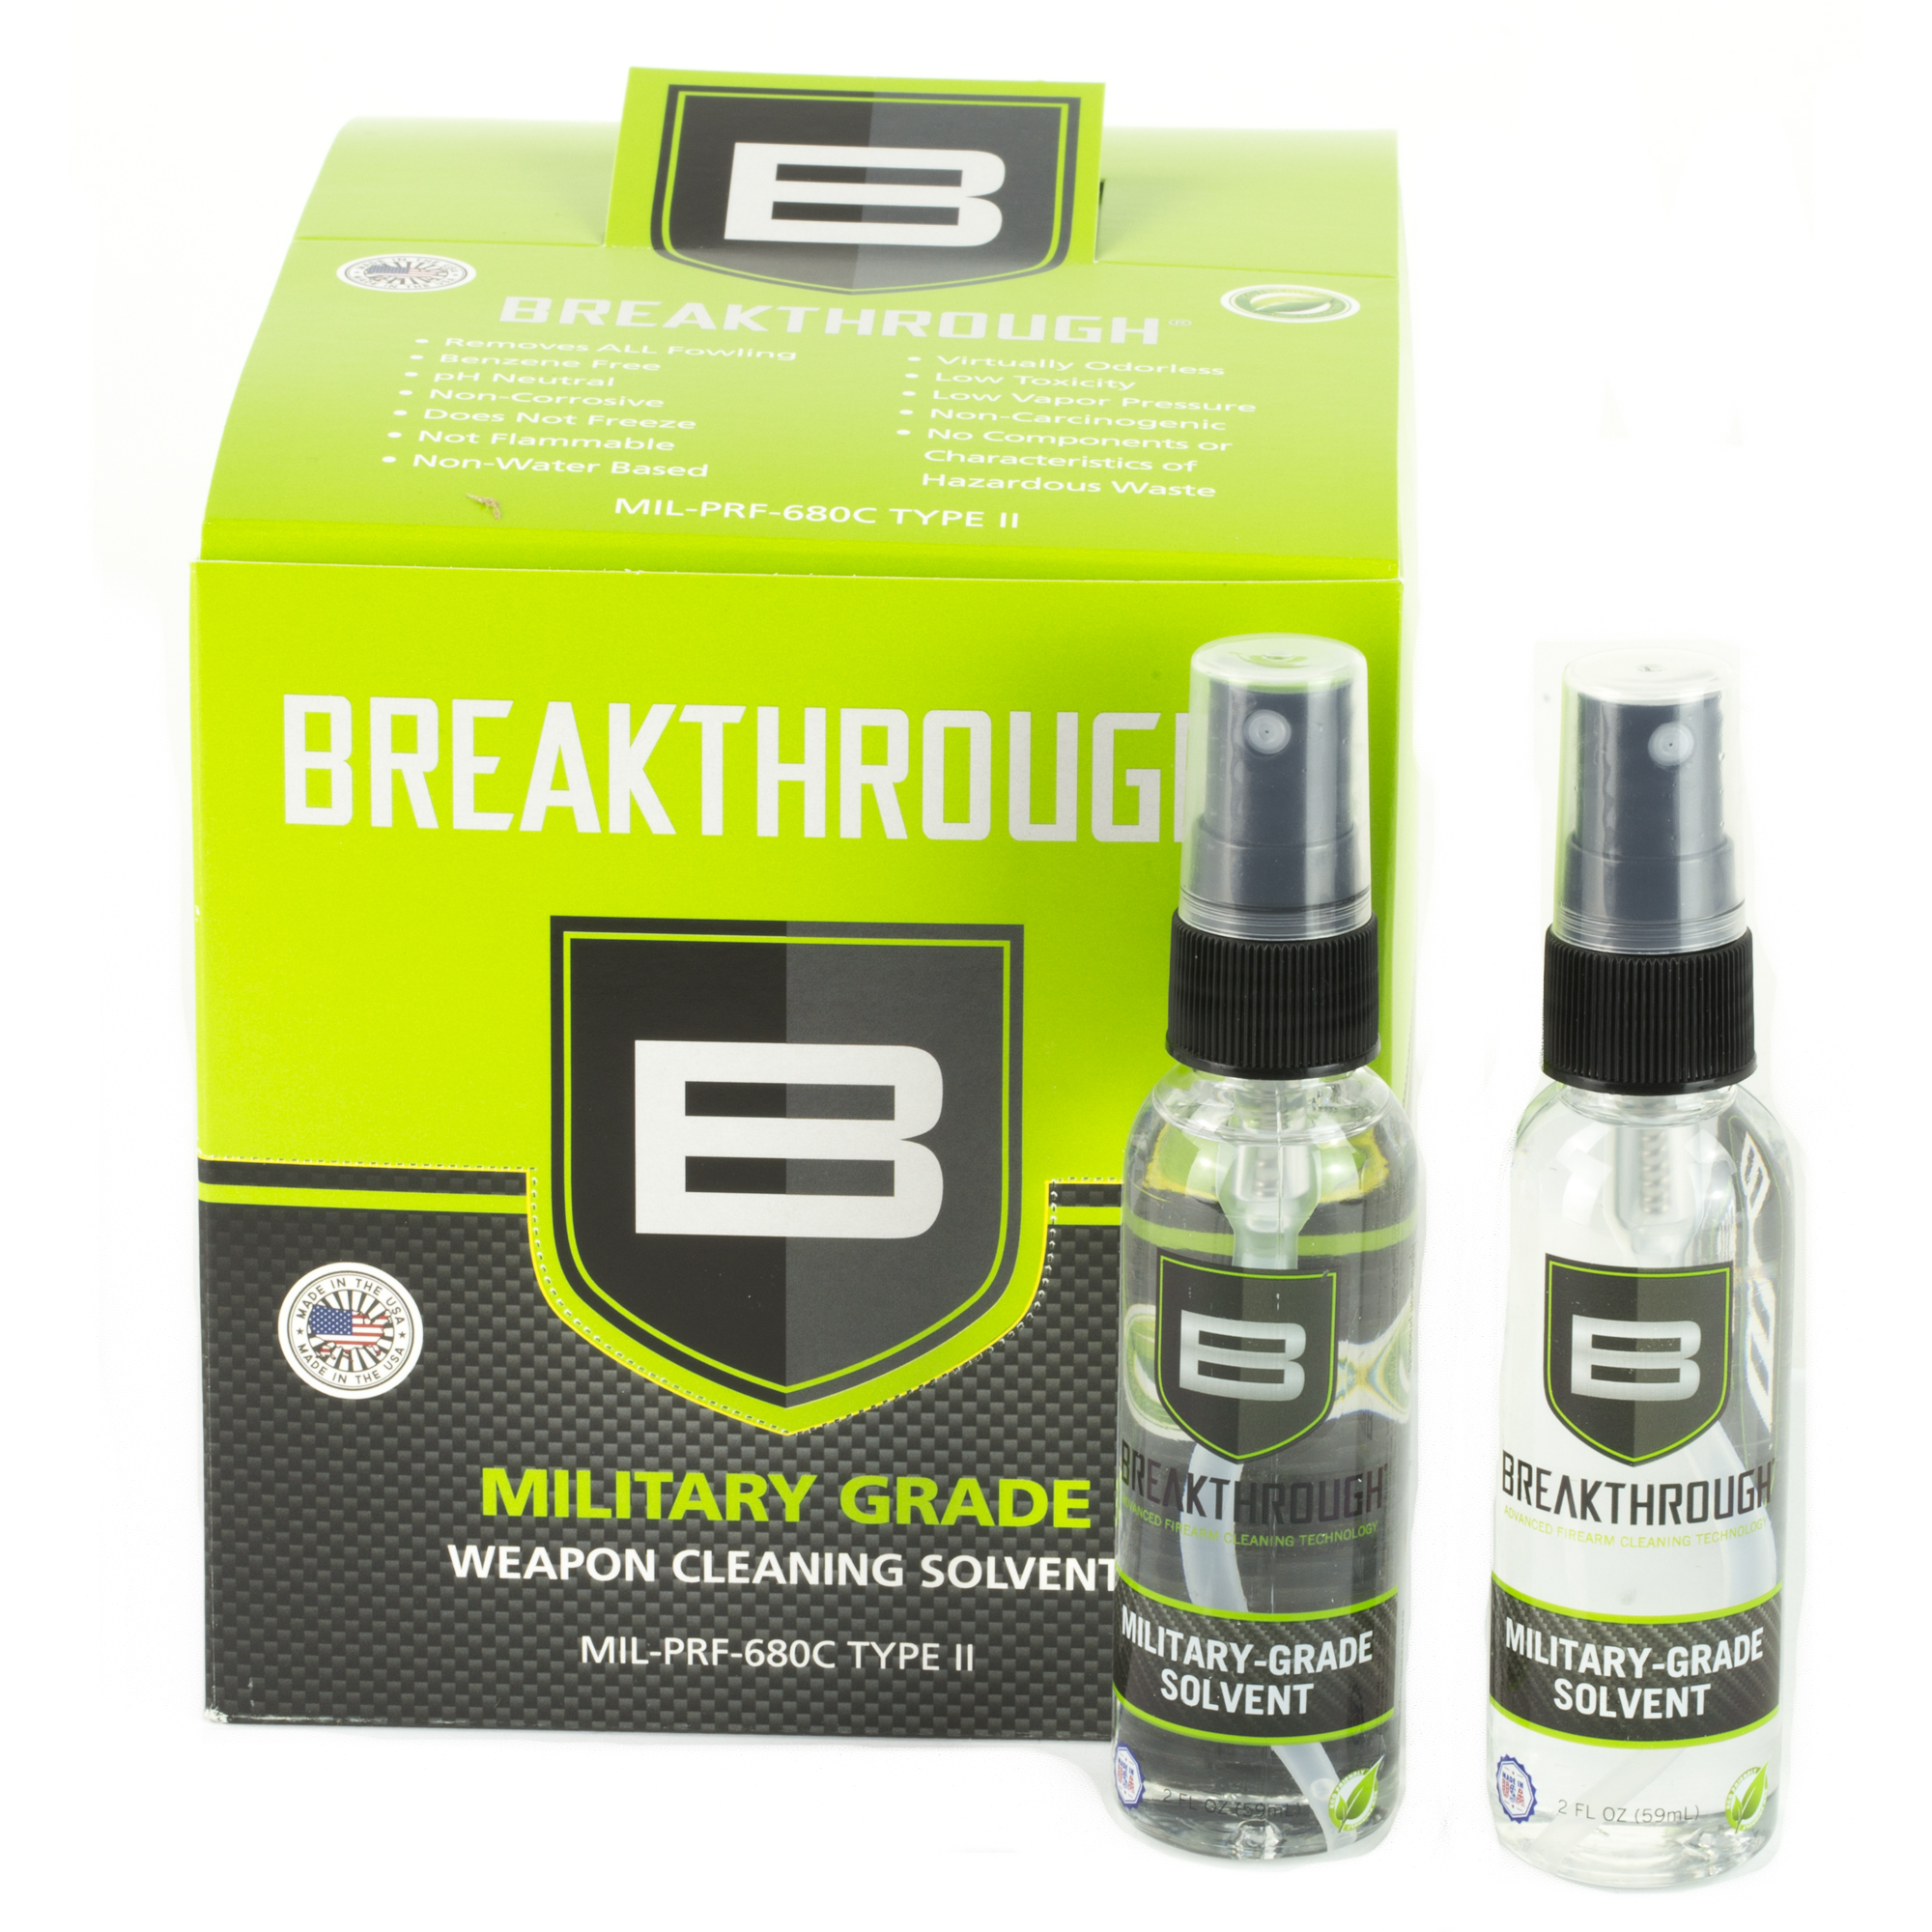 Breakthrough Mil Grd Solvnt 2oz 24pk